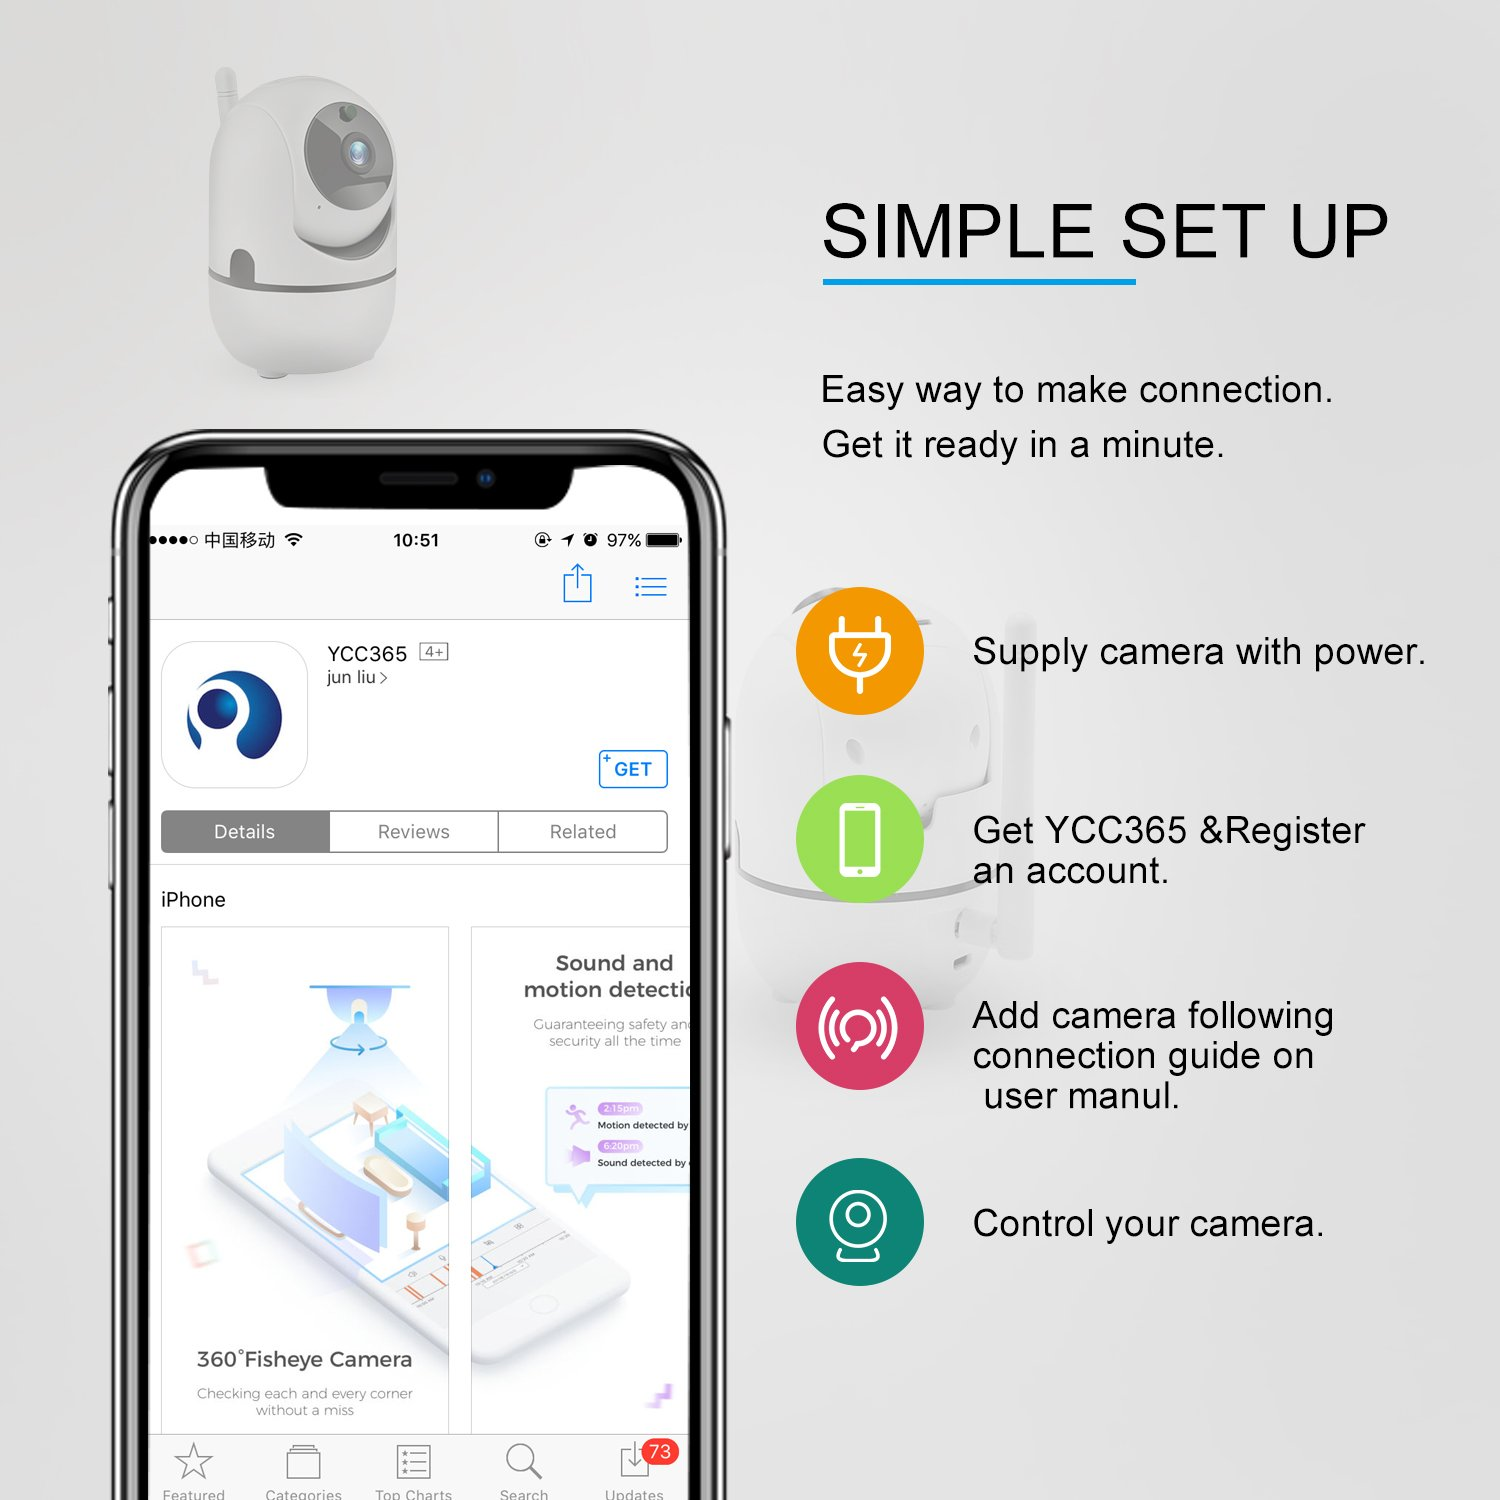 Wireless MINI Smart Camera Cloud Storage IP Camera 30 Days Free Cloud Storage Service,1080P Home Security Camera Motion Automatic Tracking/Two Way audio/Night Vision/Mobile View/ Baby Pet Monitor(1080P)